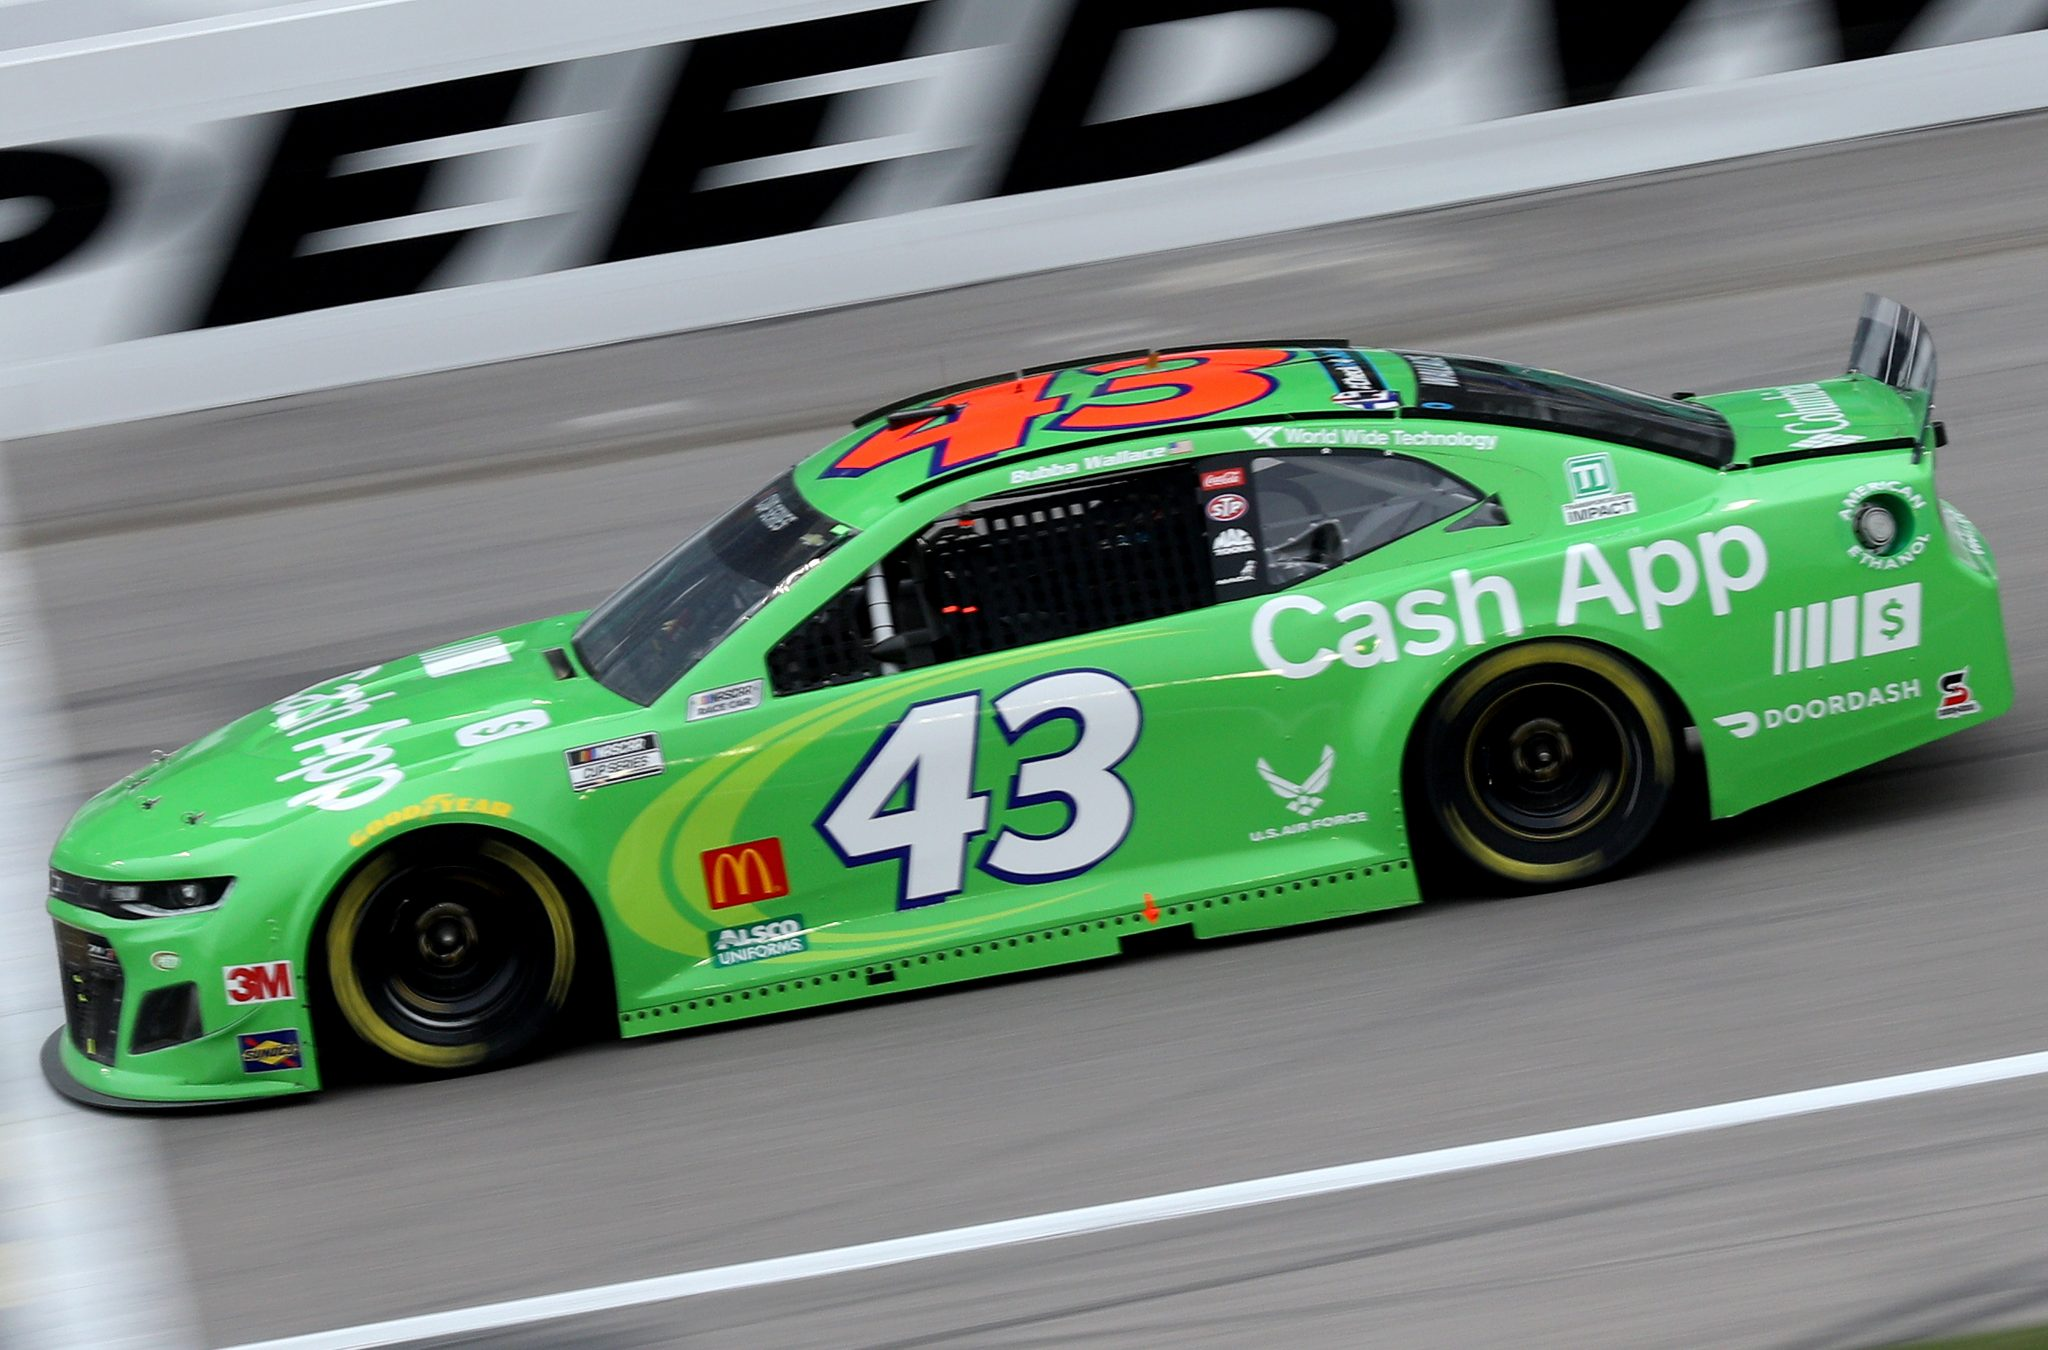 KANSAS CITY, KANSAS - OCTOBER 18: Bubba Wallace, driver of the #43 Cash App Chevrolet, drives during the NASCAR Cup Series Hollywood Casino 400 at Kansas Speedway on October 18, 2020 in Kansas City, Kansas. (Photo by Chris Graythen/Getty Images) | Getty Images